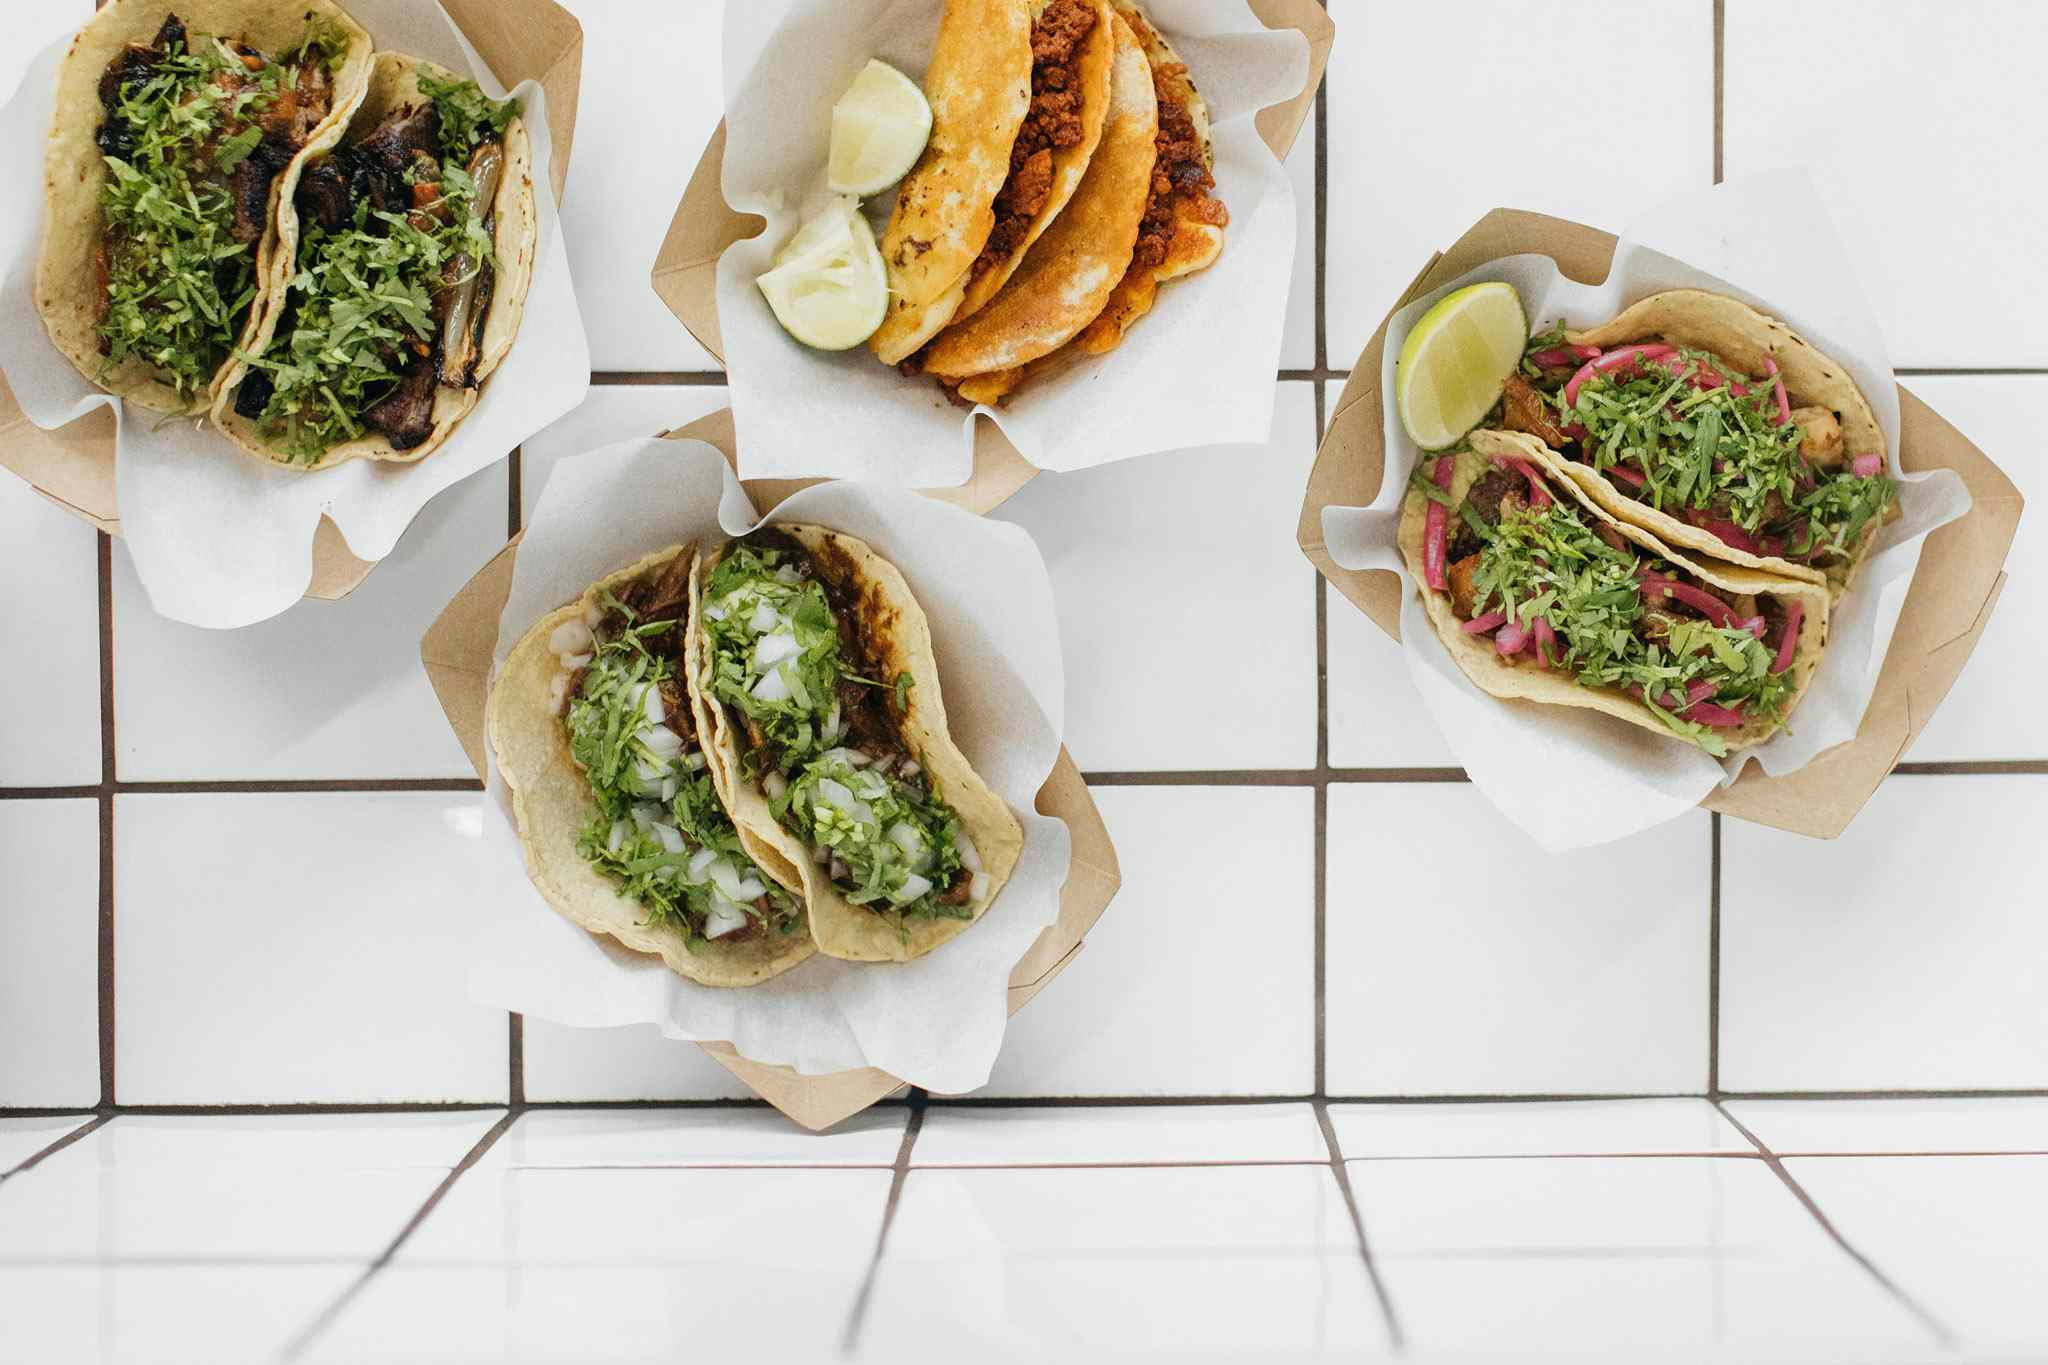 Tacos on a tiled table